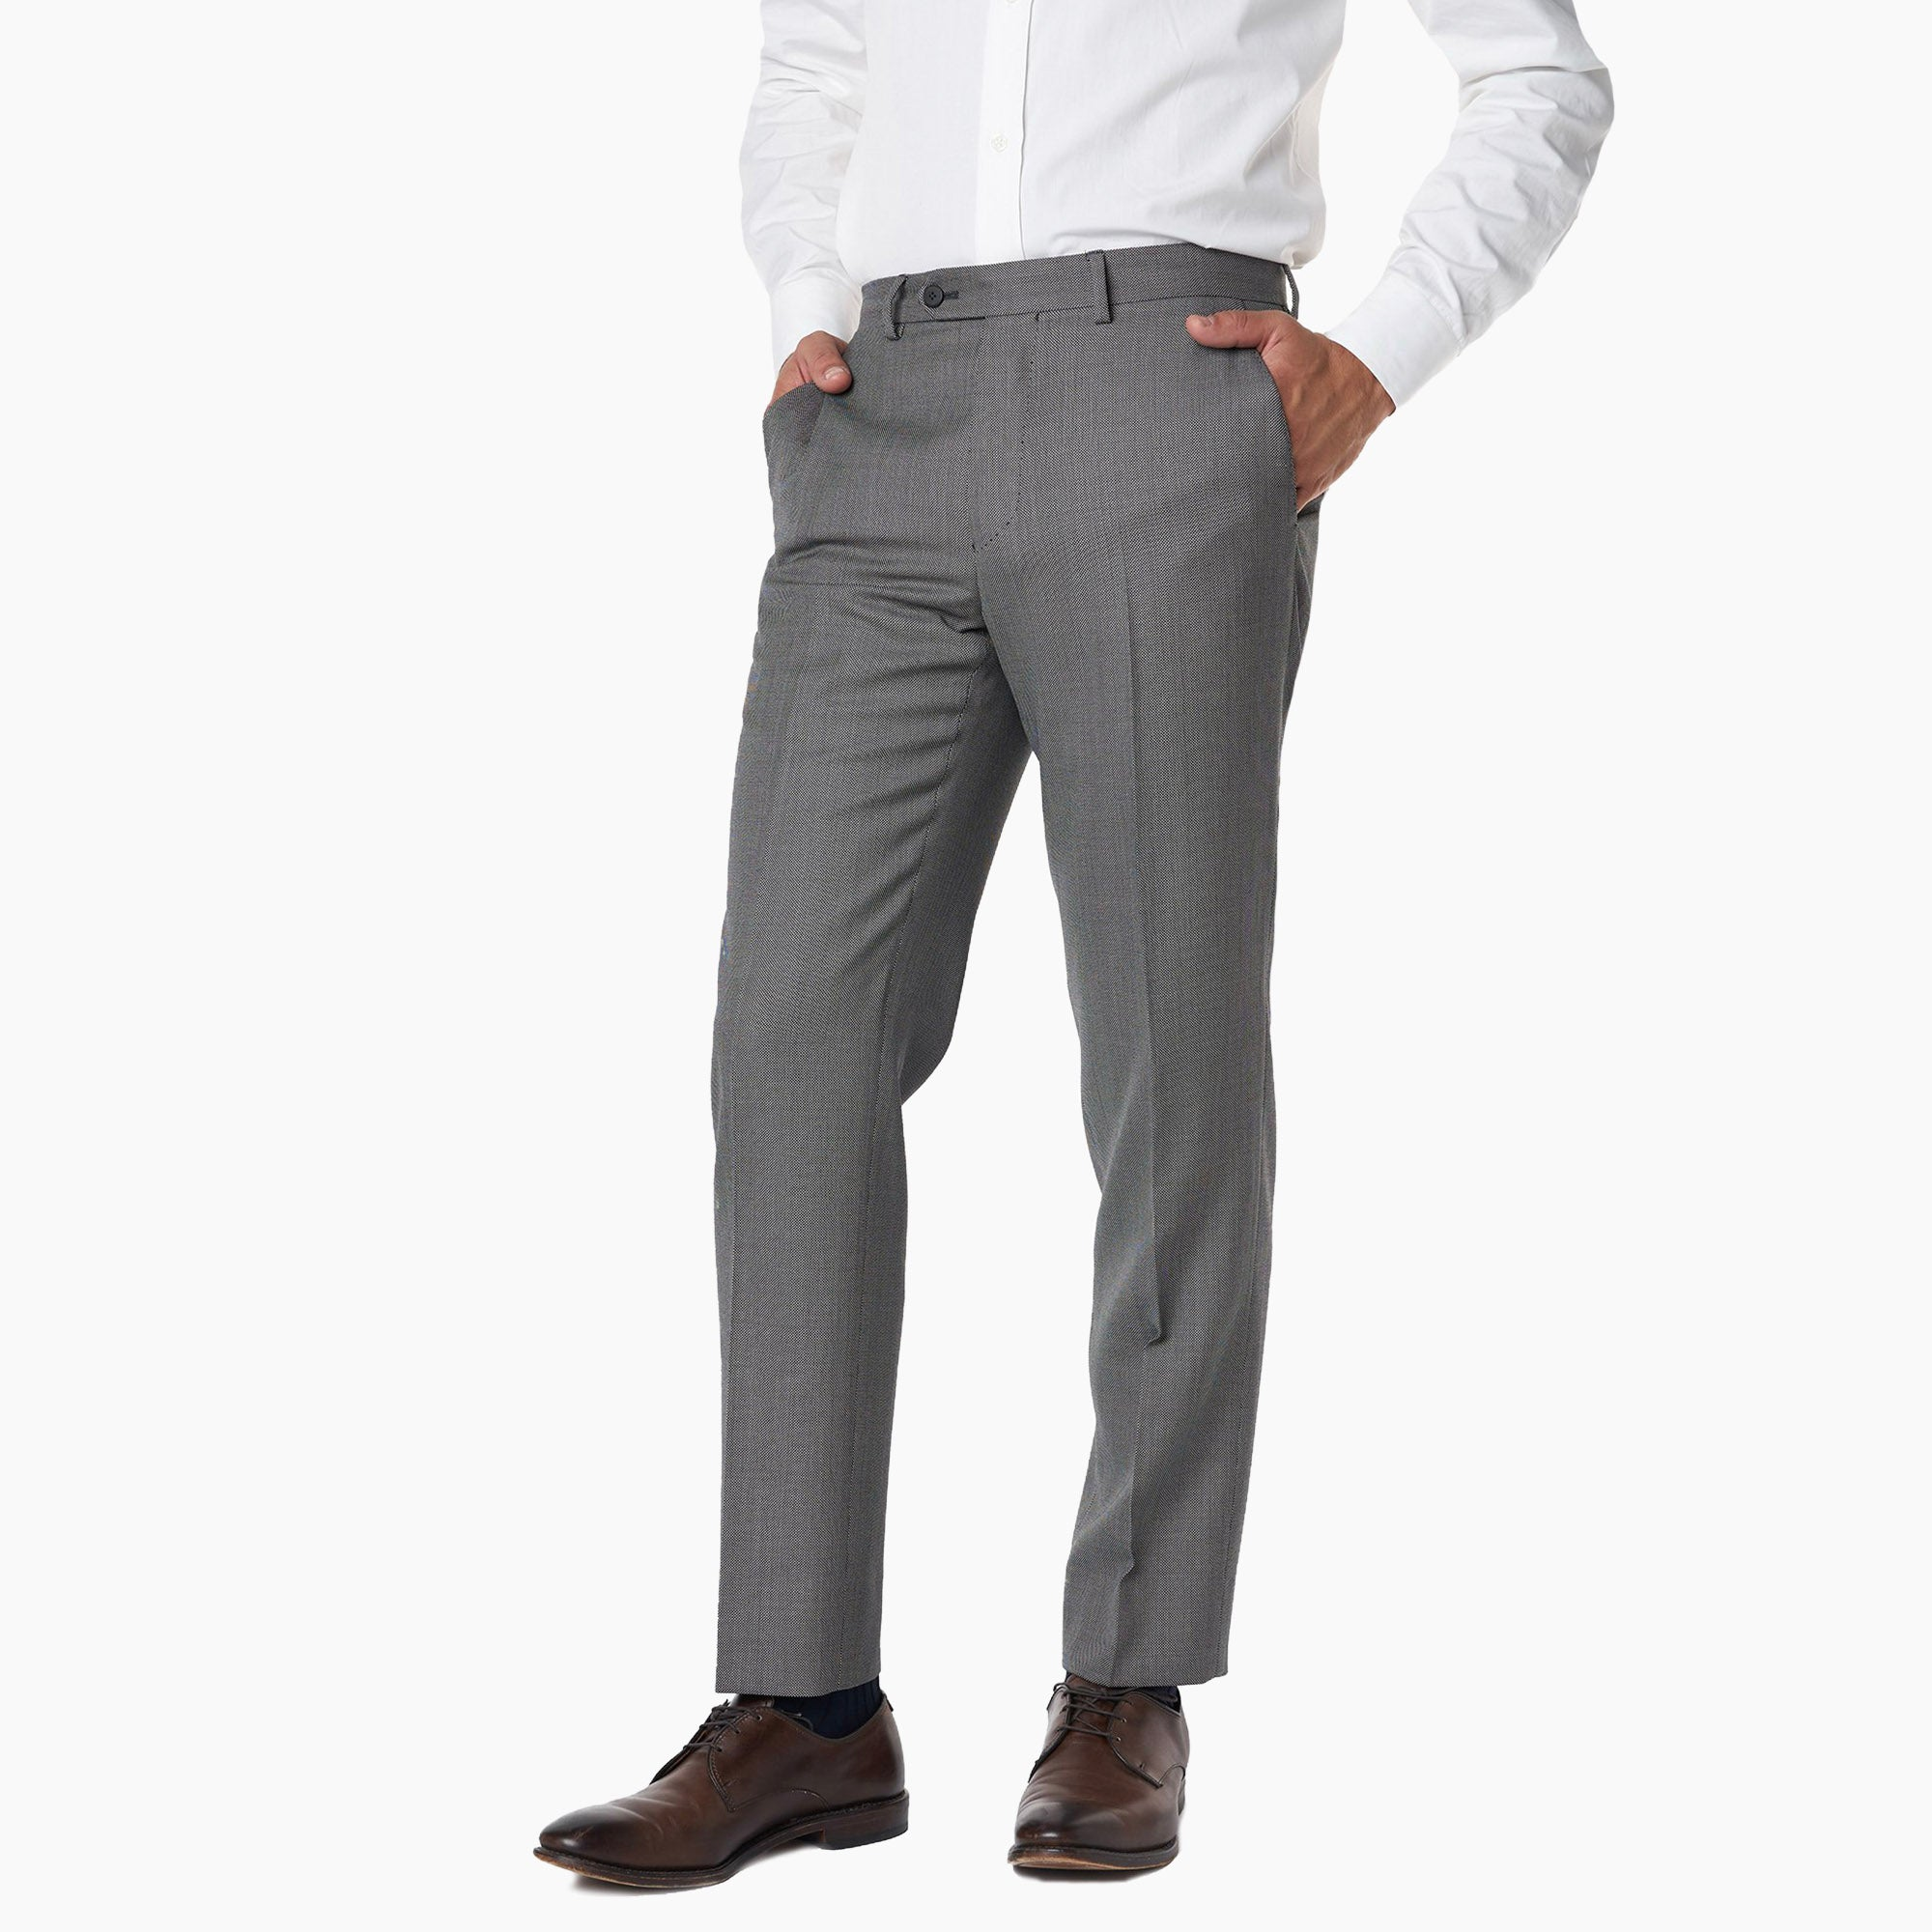 Essex Dress Pants - Grey Birdseye